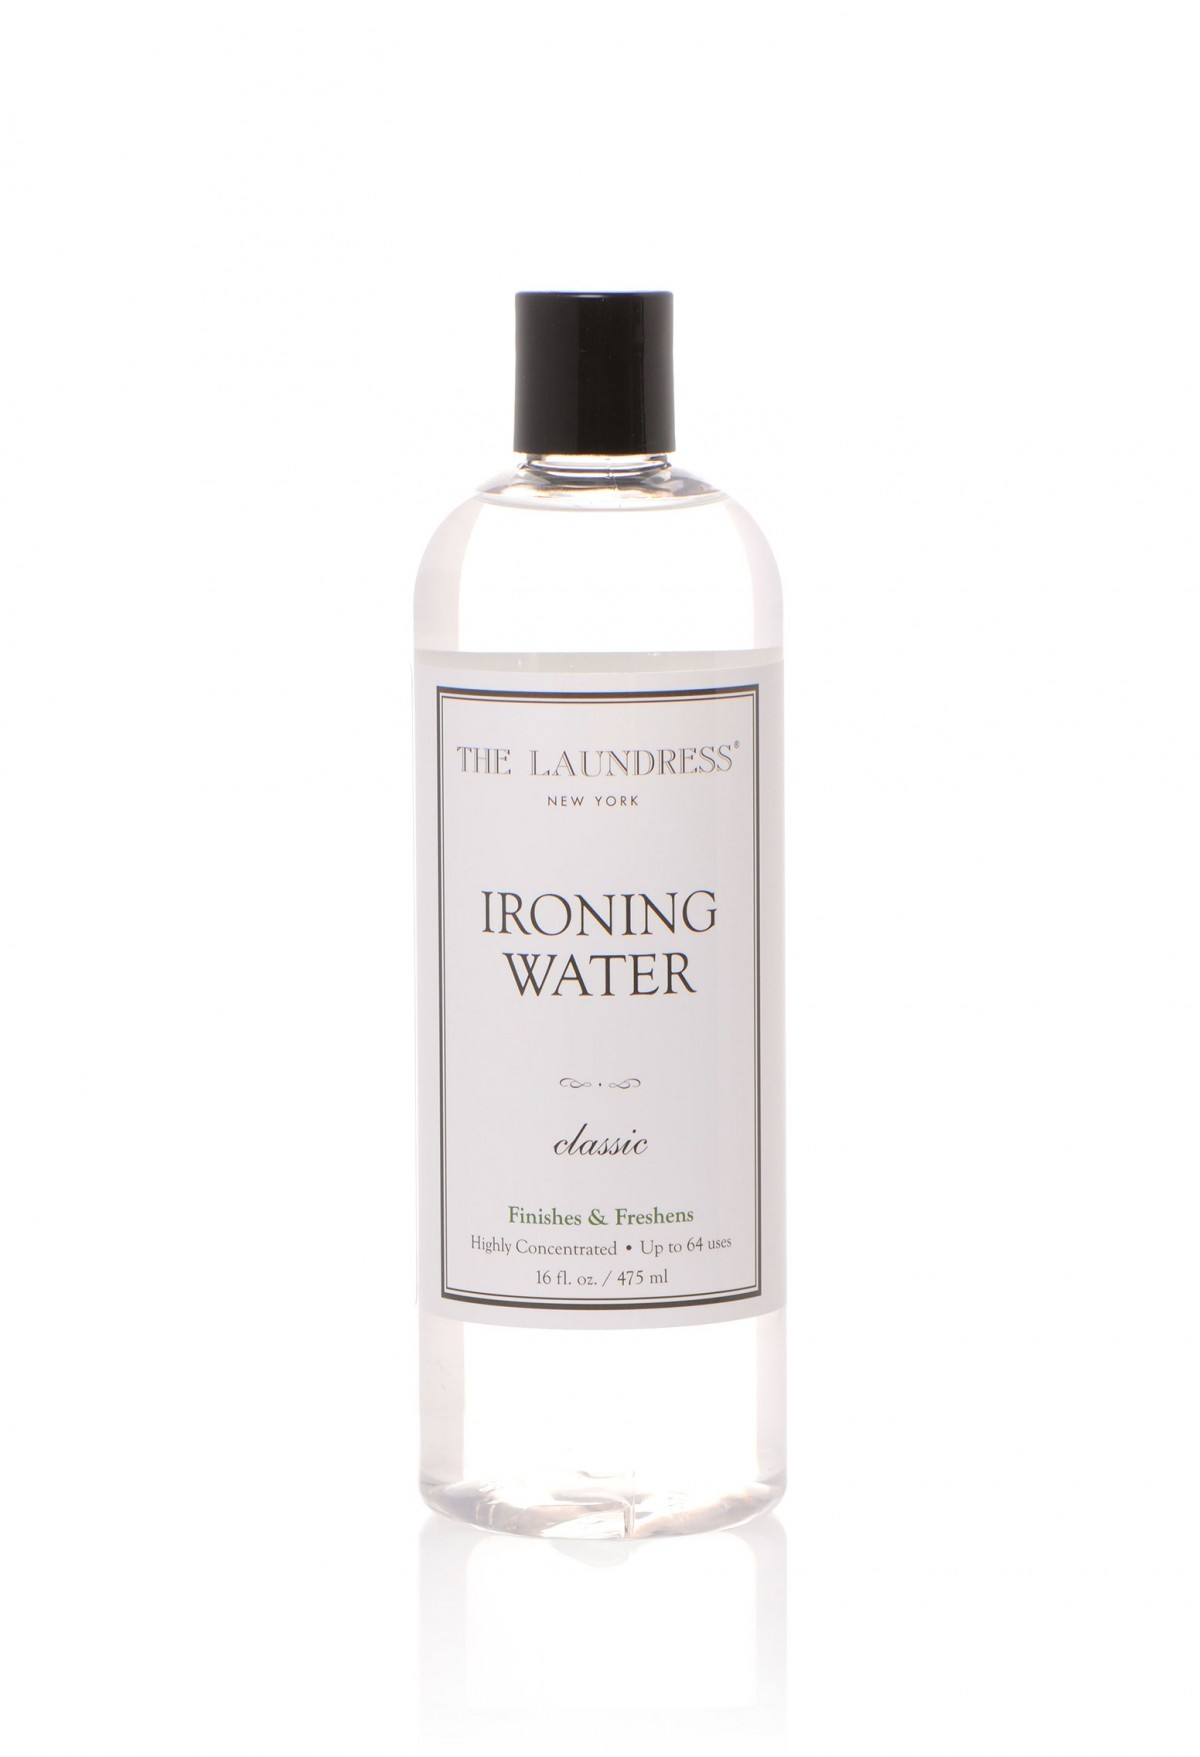 THE LAUNDRESS IRONING  WATER CLASSIC 475 ML